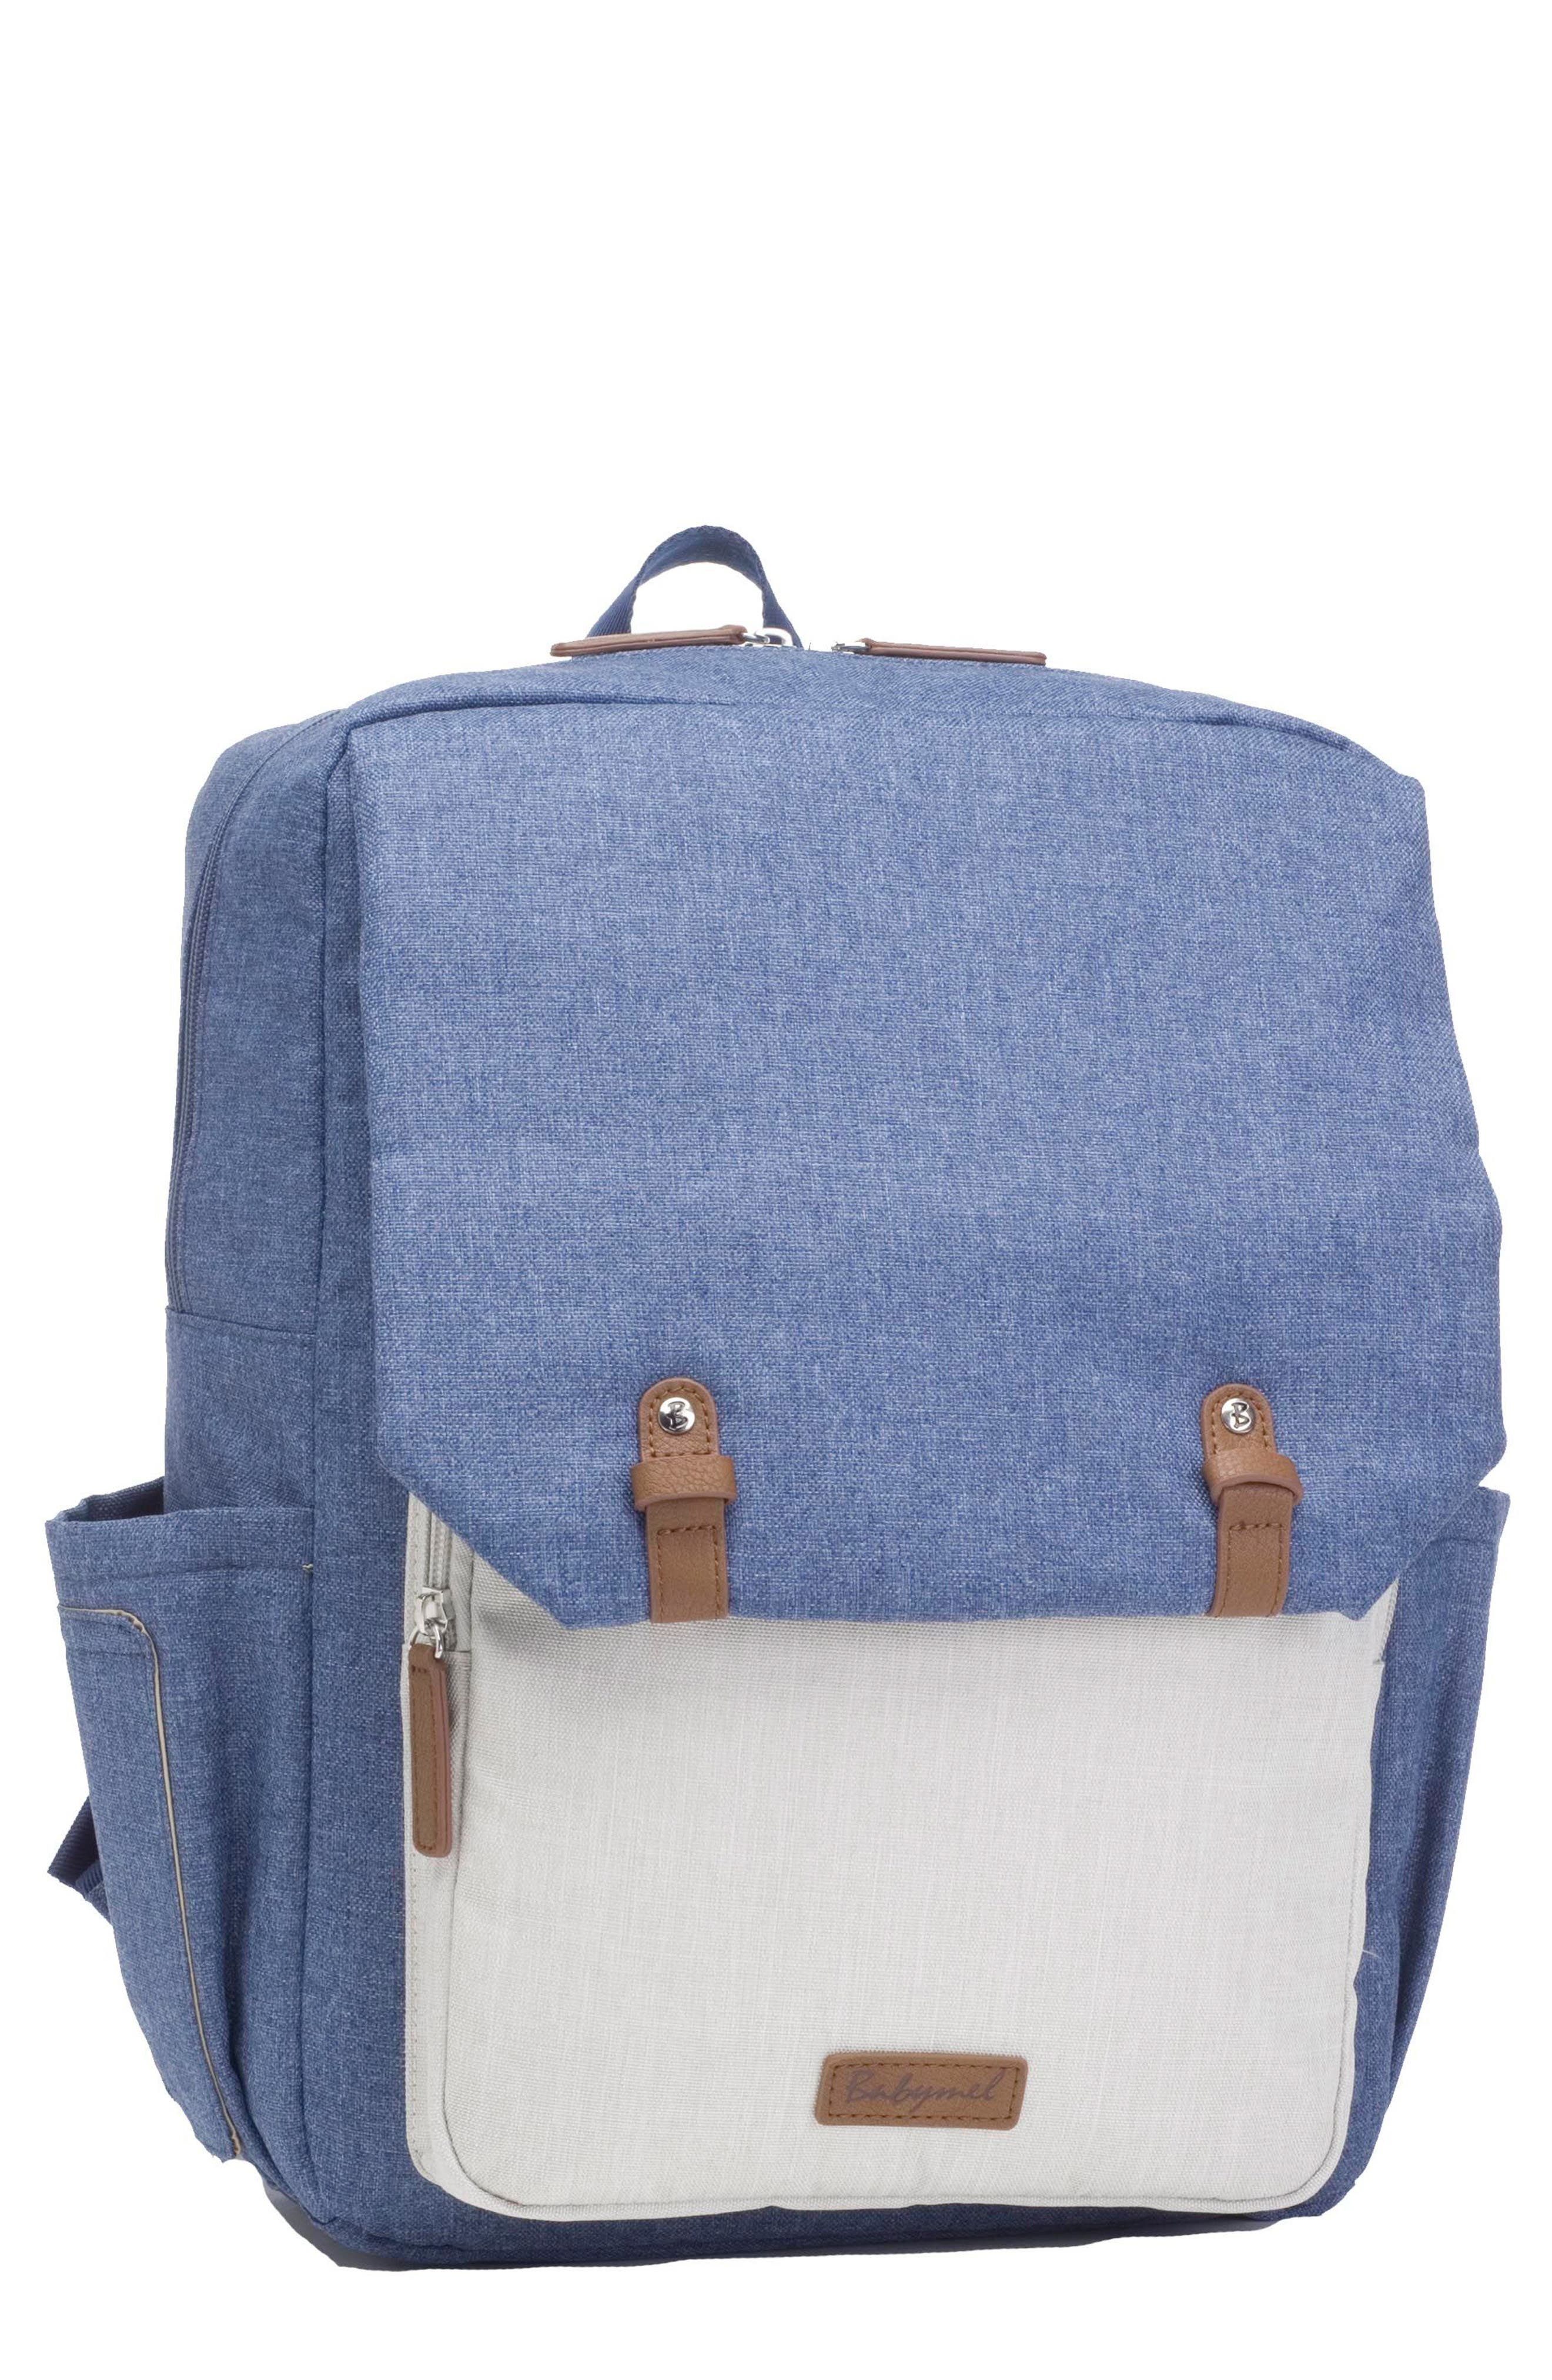 George Water Resistant Diaper Backpack,                         Main,                         color, Mid Blue/ Oatmeal